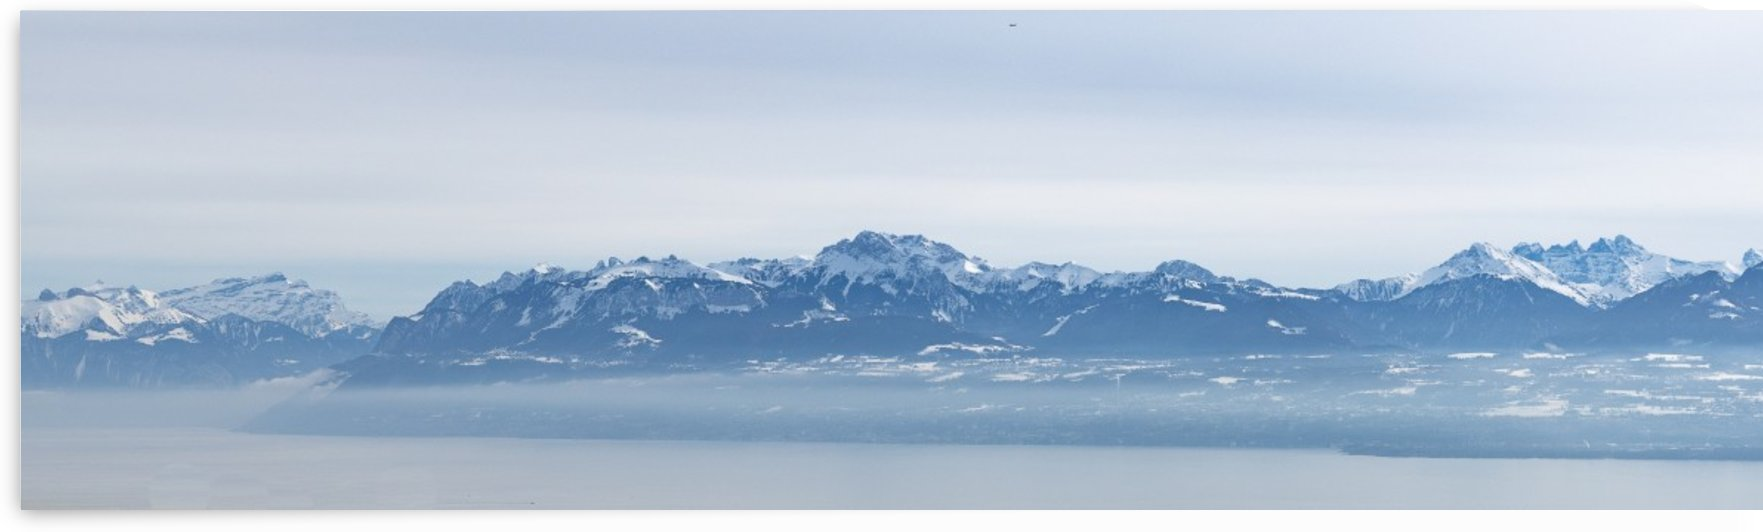 Lake Geneva and Alps by Per-Anders Gunnarsson